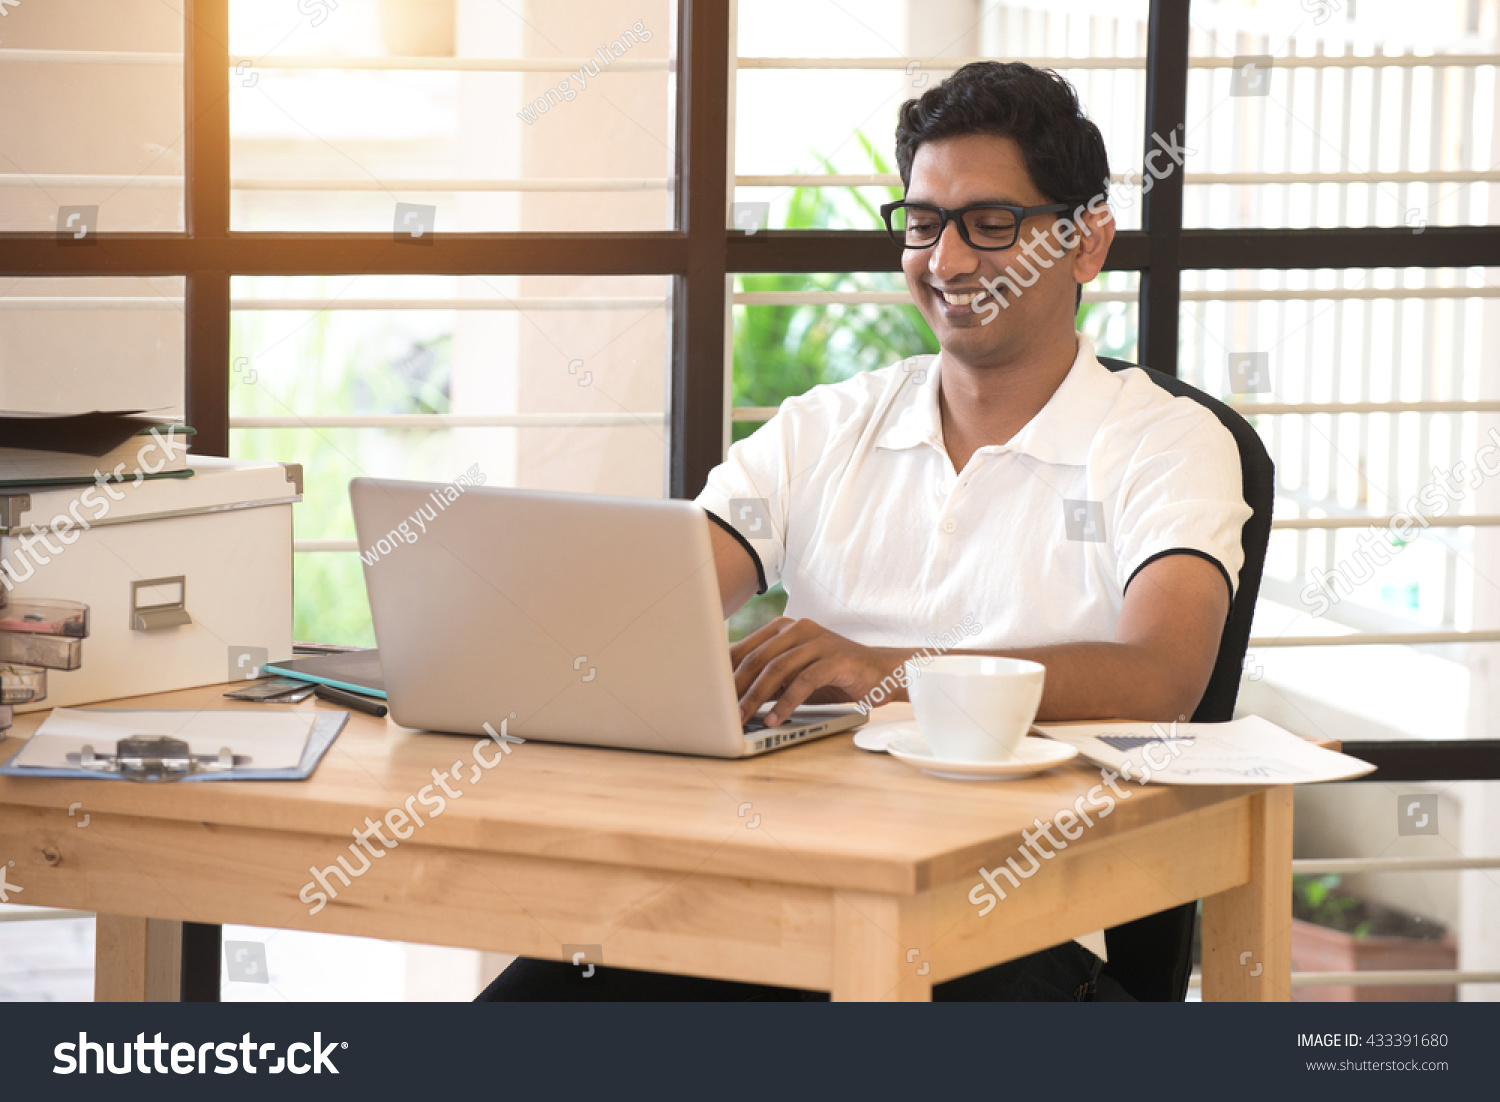 Young Indian Man Working Home Office Stock Photo 433391680